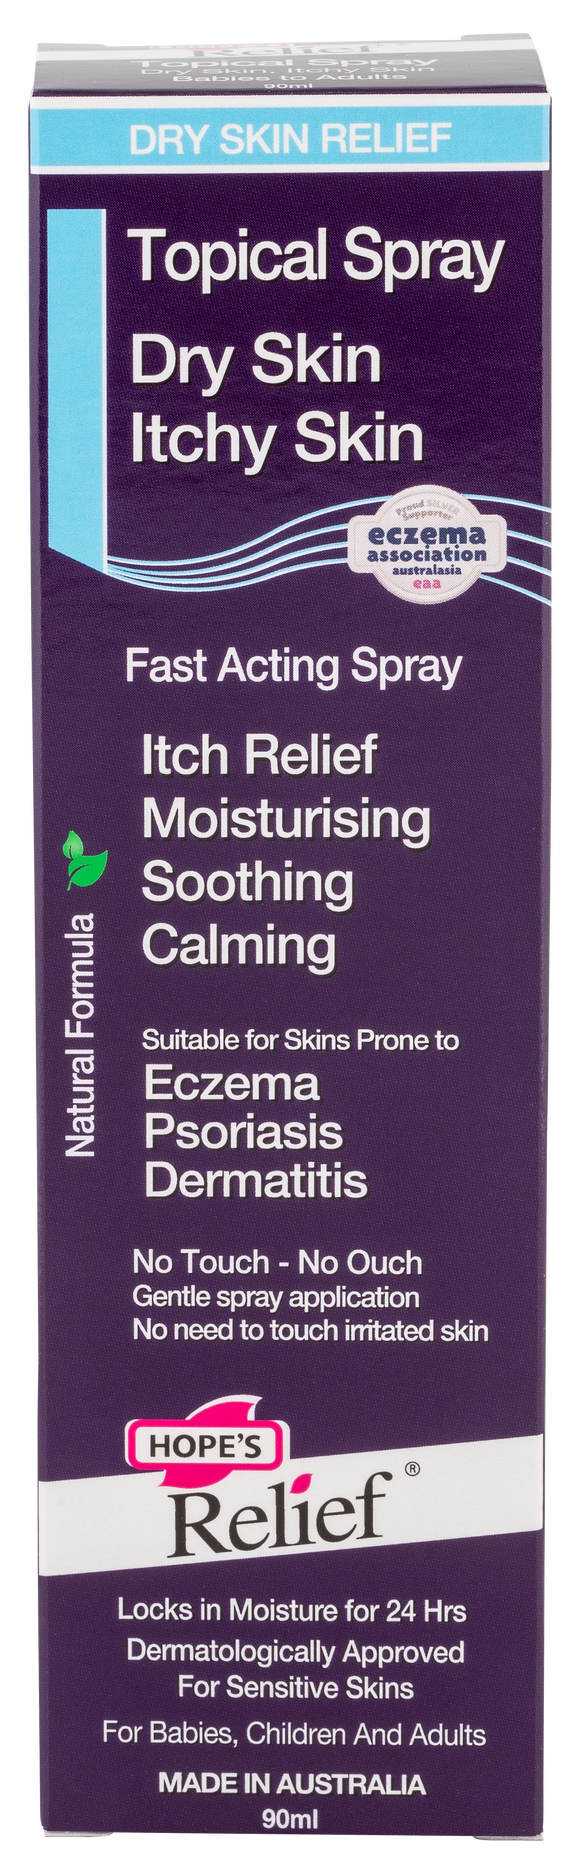 Topical Spray – natural skin hydration for Dry Skin